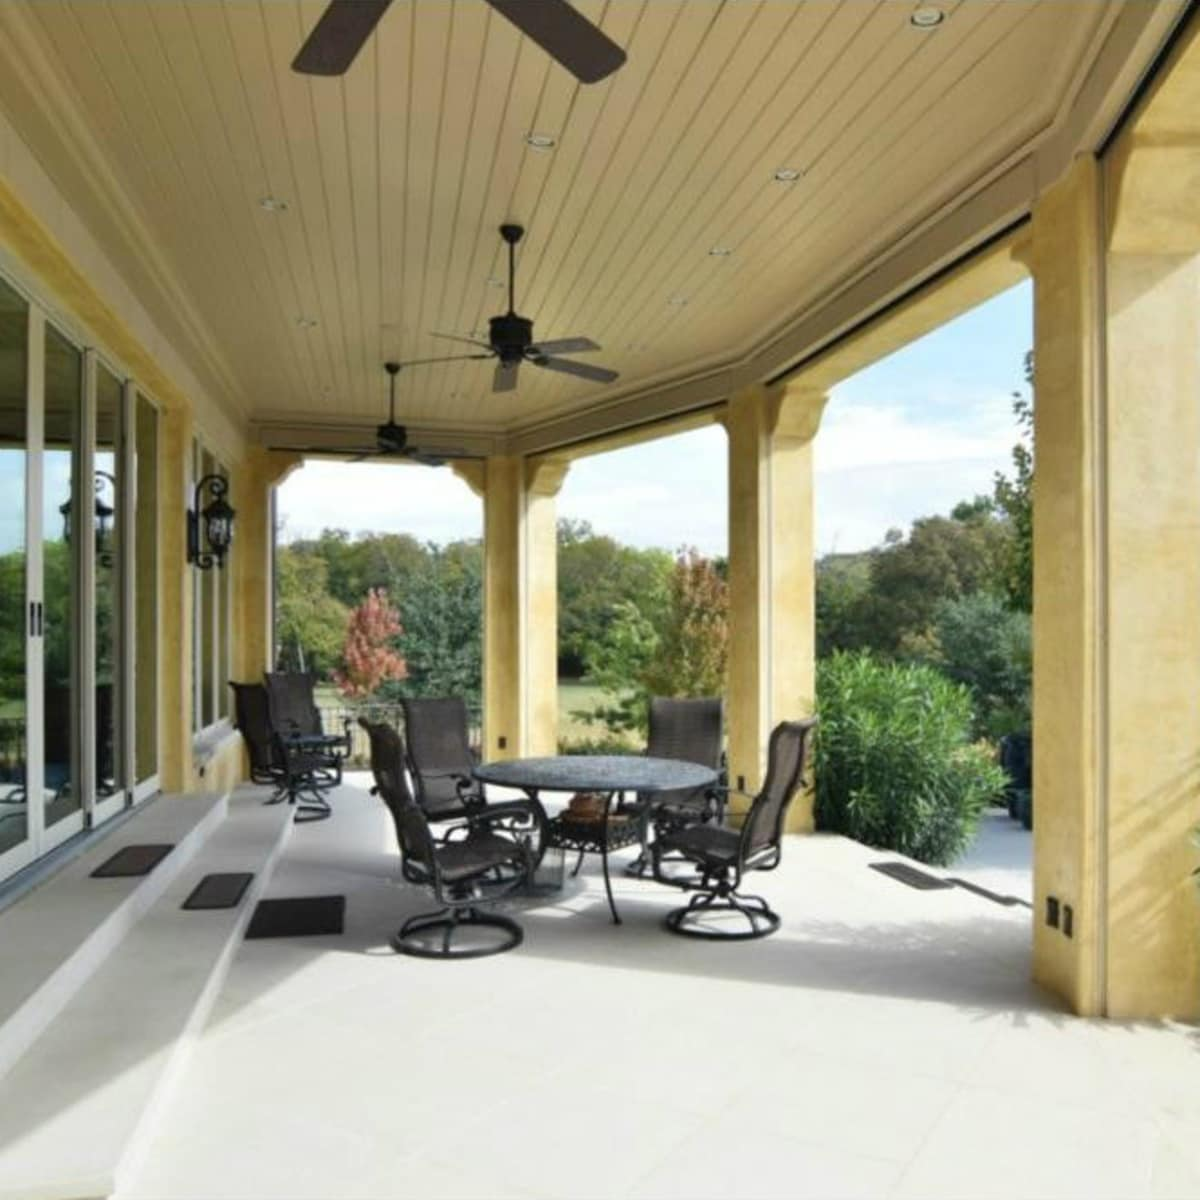 Porch at 12258 Creek Forest Dr. in Dallas